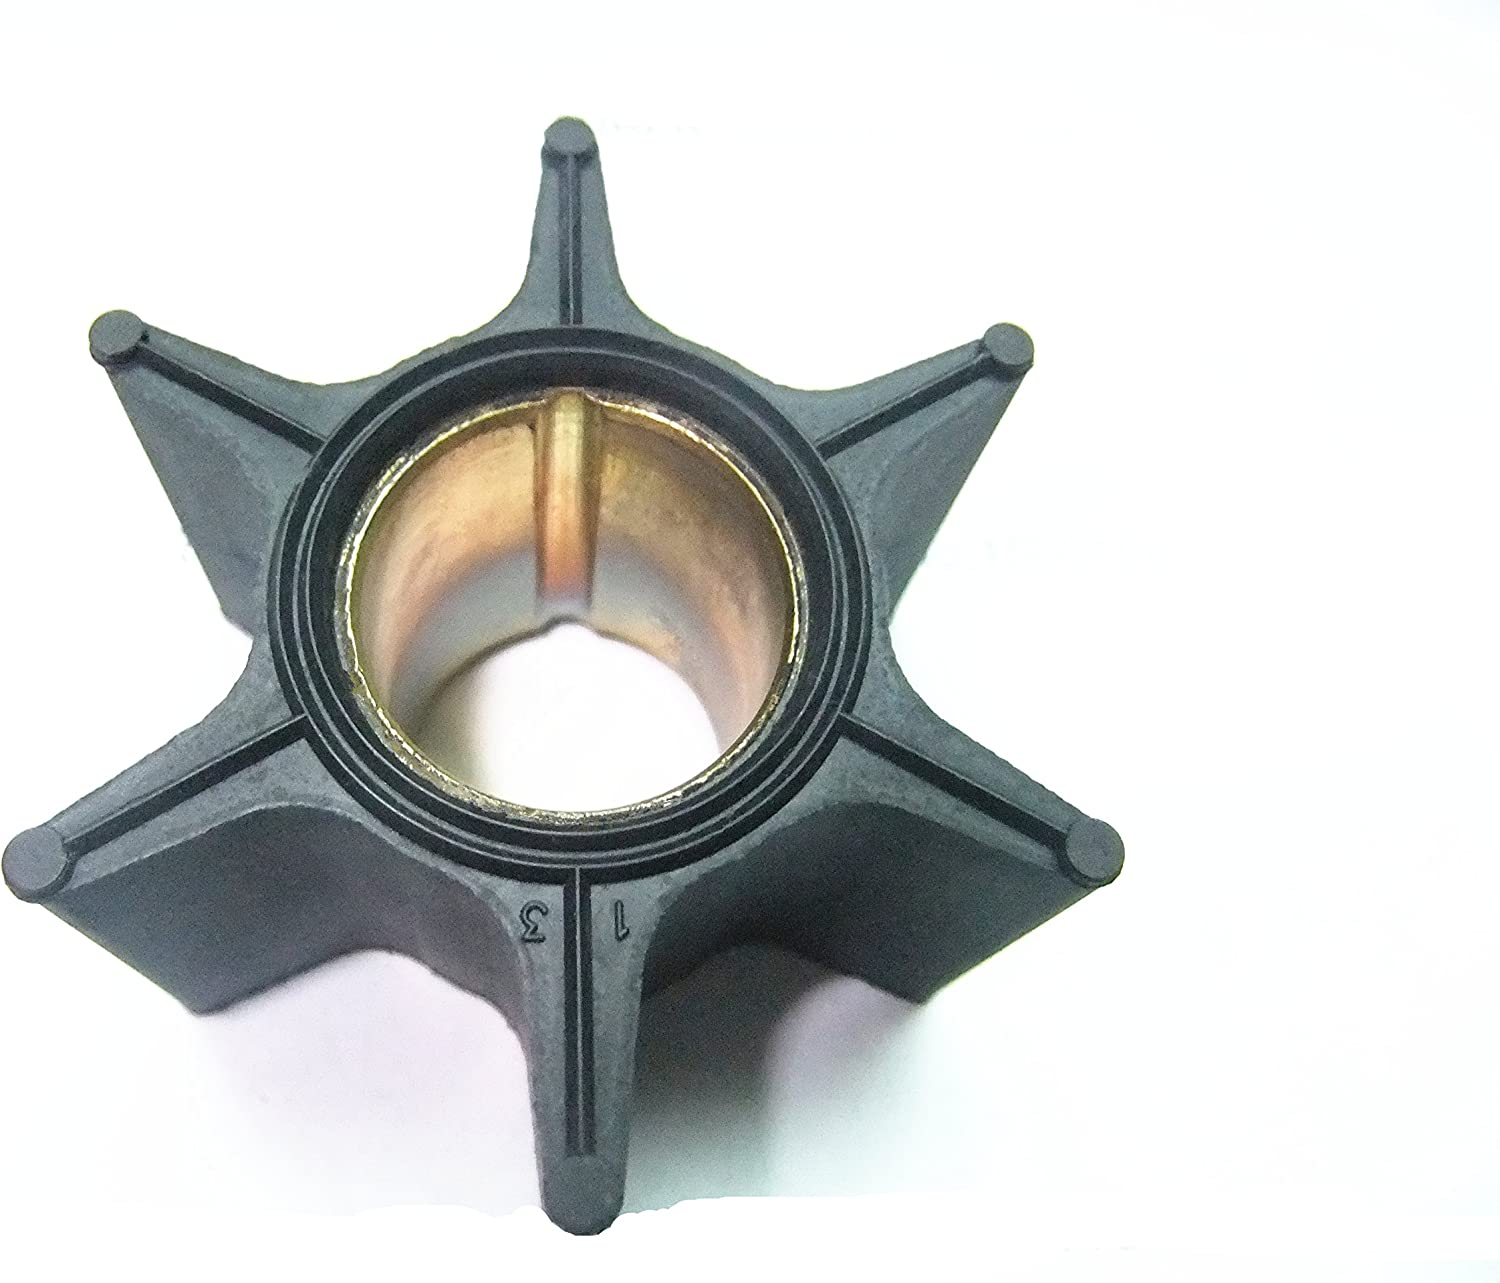 SouthMarine 47-89984 47-89984T4 47-80363 1T 47-F694065 47-30221 18-3017 Boat Engine Impeller for Mercury Mercruiser 75-225hp Outboard Motors